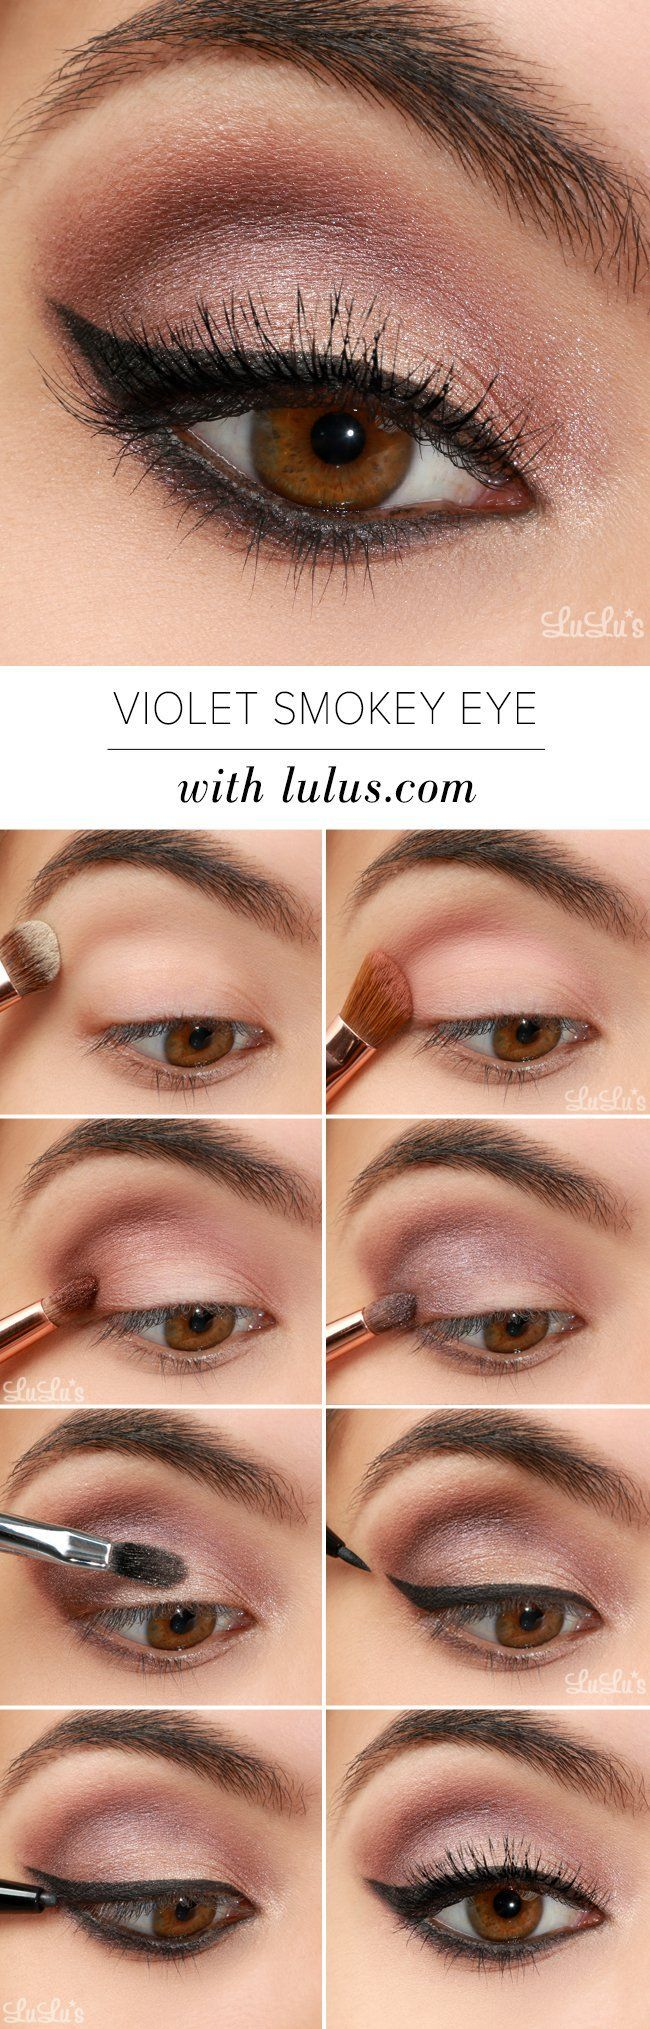 15 fabulous step-by-step tutorials you'd like to try …